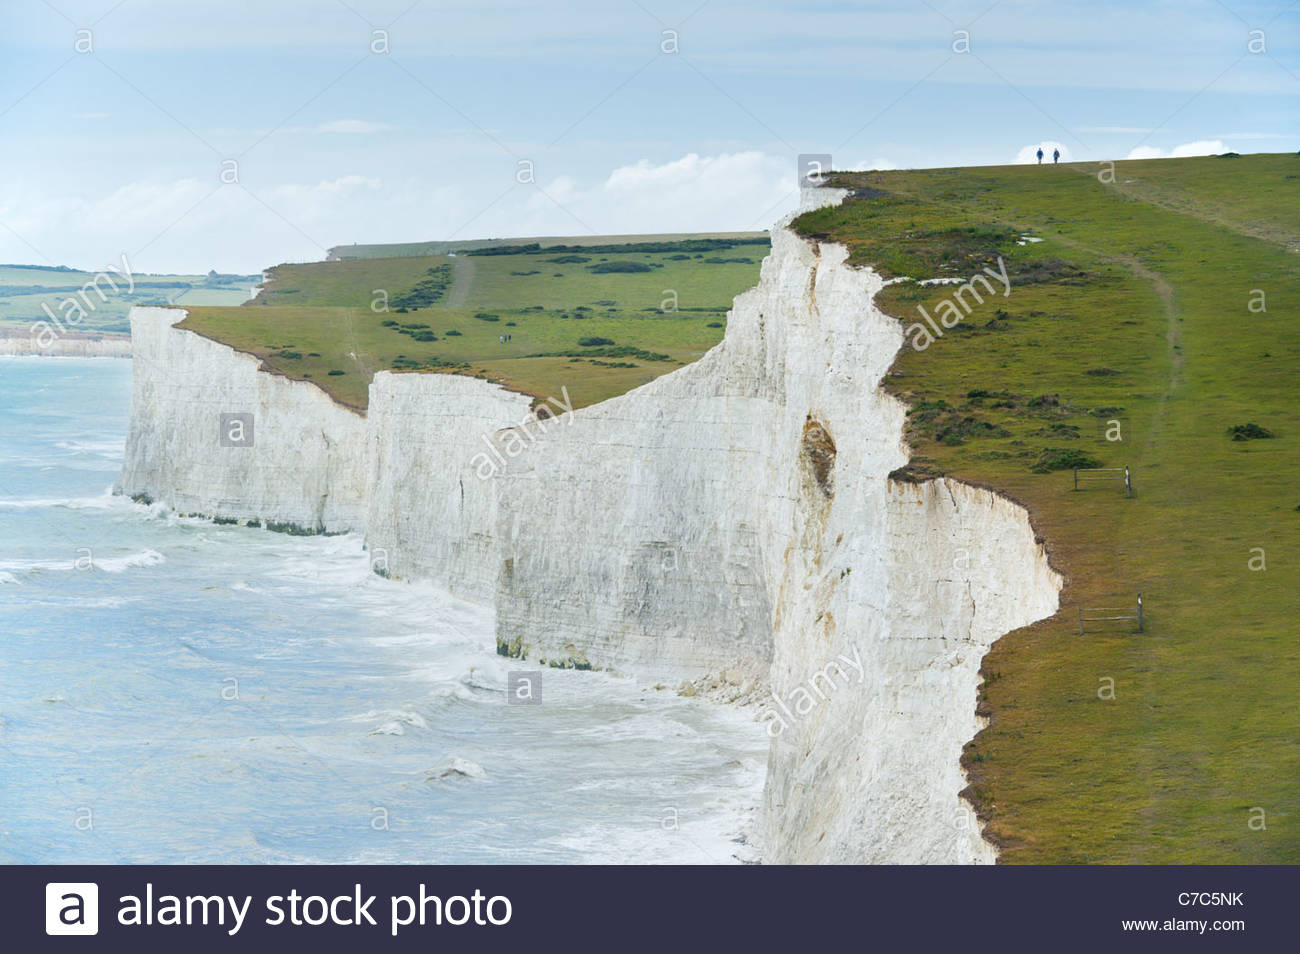 Walkers above the Seven Sisters cliffs, South Downs National Park, East Sussex, England. Stock Photo